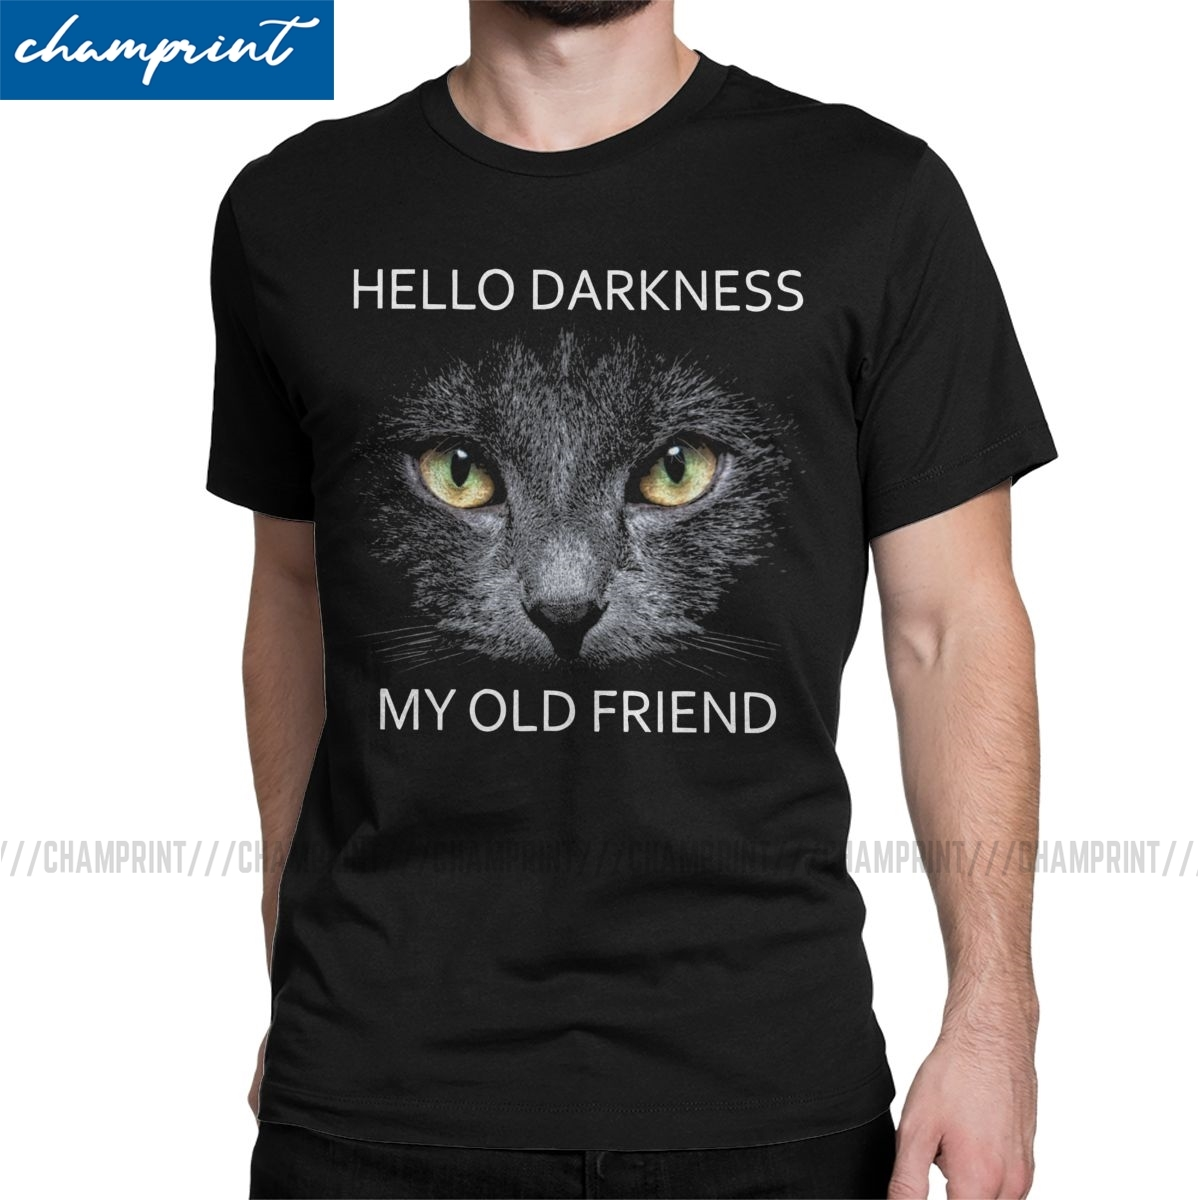 Hello Darkness My Old Friend T Shirt Men's Cotton Funny T-Shirts Crew Neck Pet Animal Cat Tee Shirt Short Sleeve Clothes Graphic image